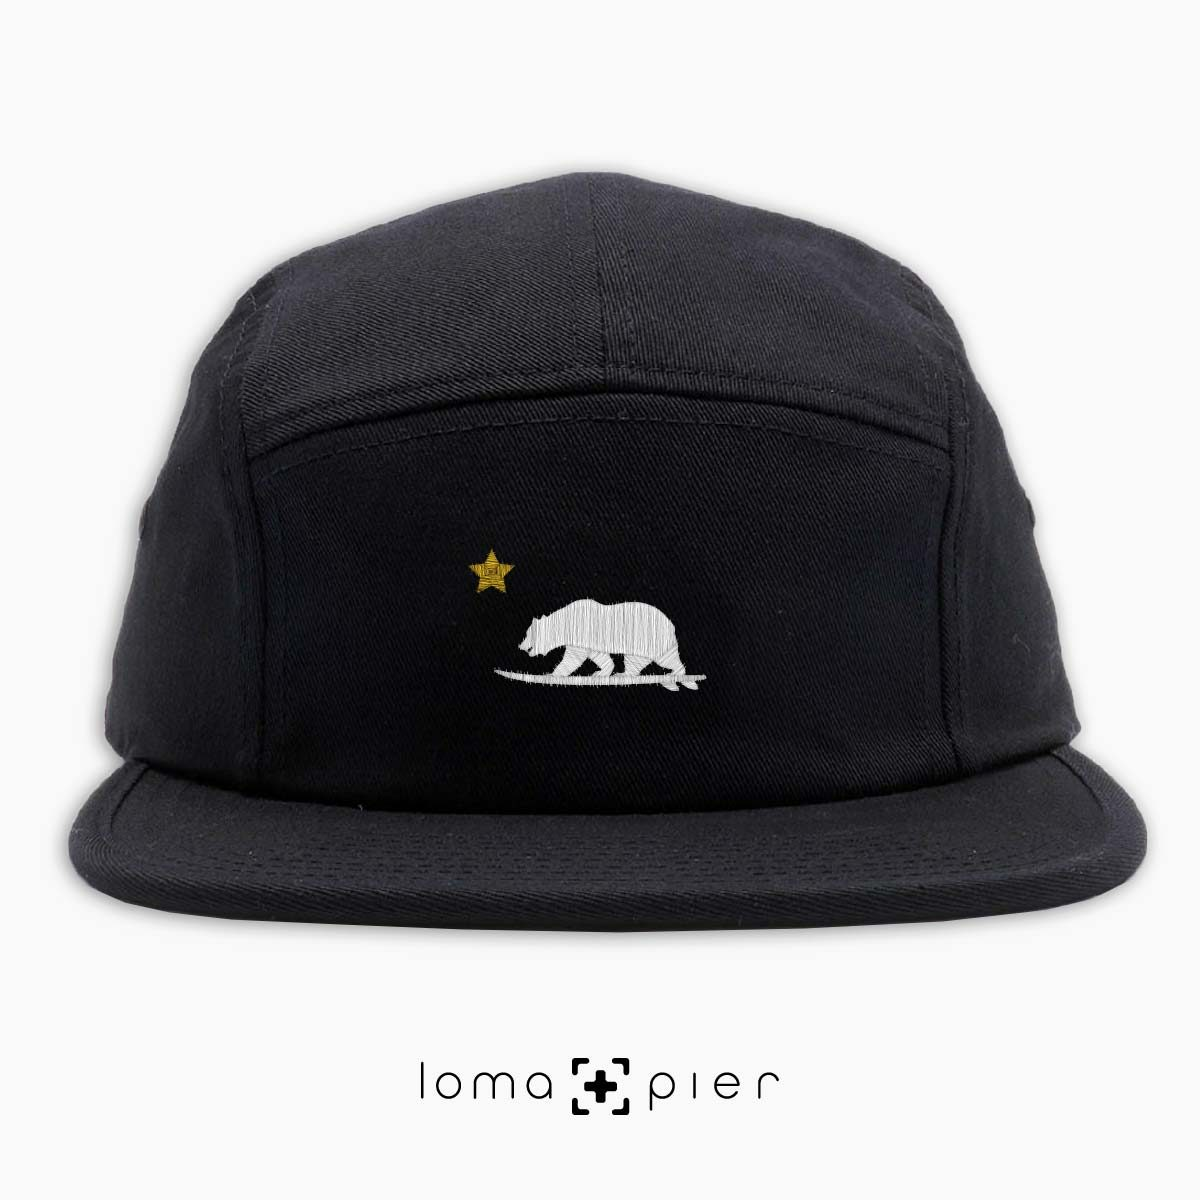 CALI SURFER icon embroidered on a black cotton 5-panel hat with white and gold thread by loma+pier hat store